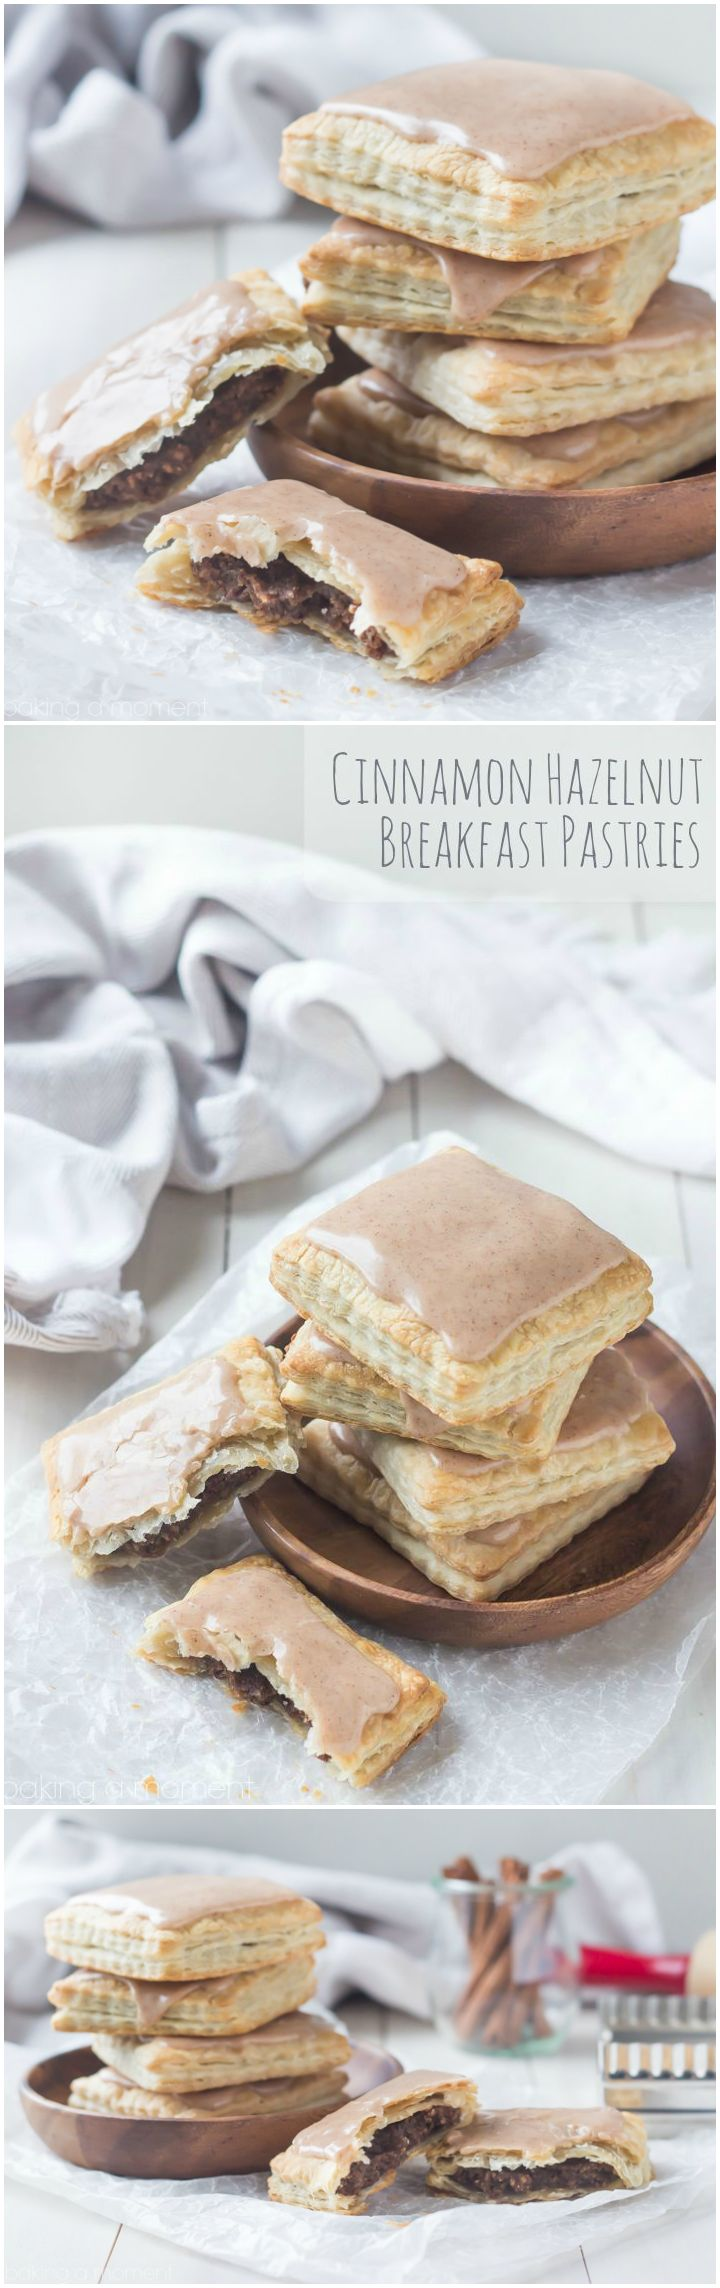 Cinnamon Hazelnut Breakfast Pastries- the crust is so flaky & buttery, and that filling! These make busy mornings feel so much more special.